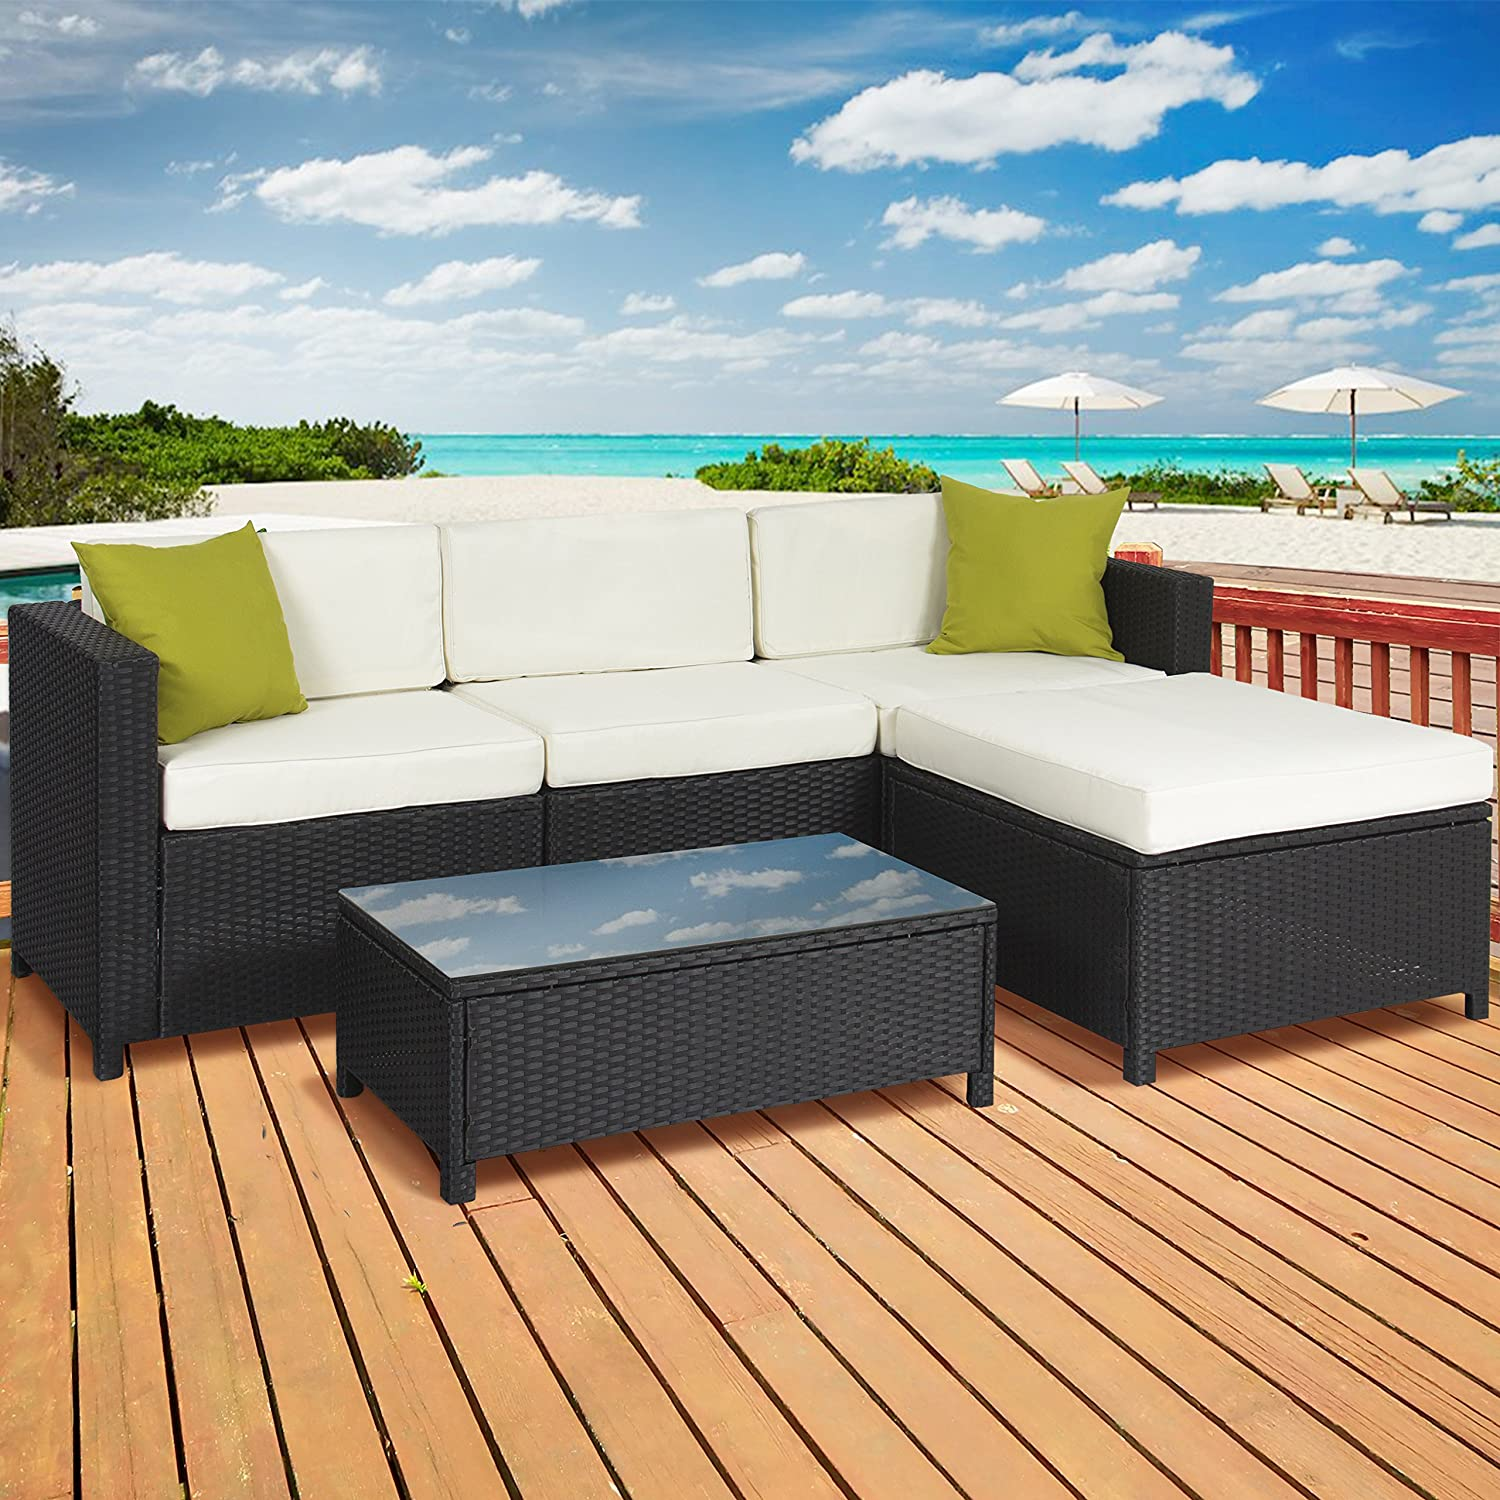 patio couch set amazoncom best choice products pc rattan wicker sofa set patio lawn amp garden